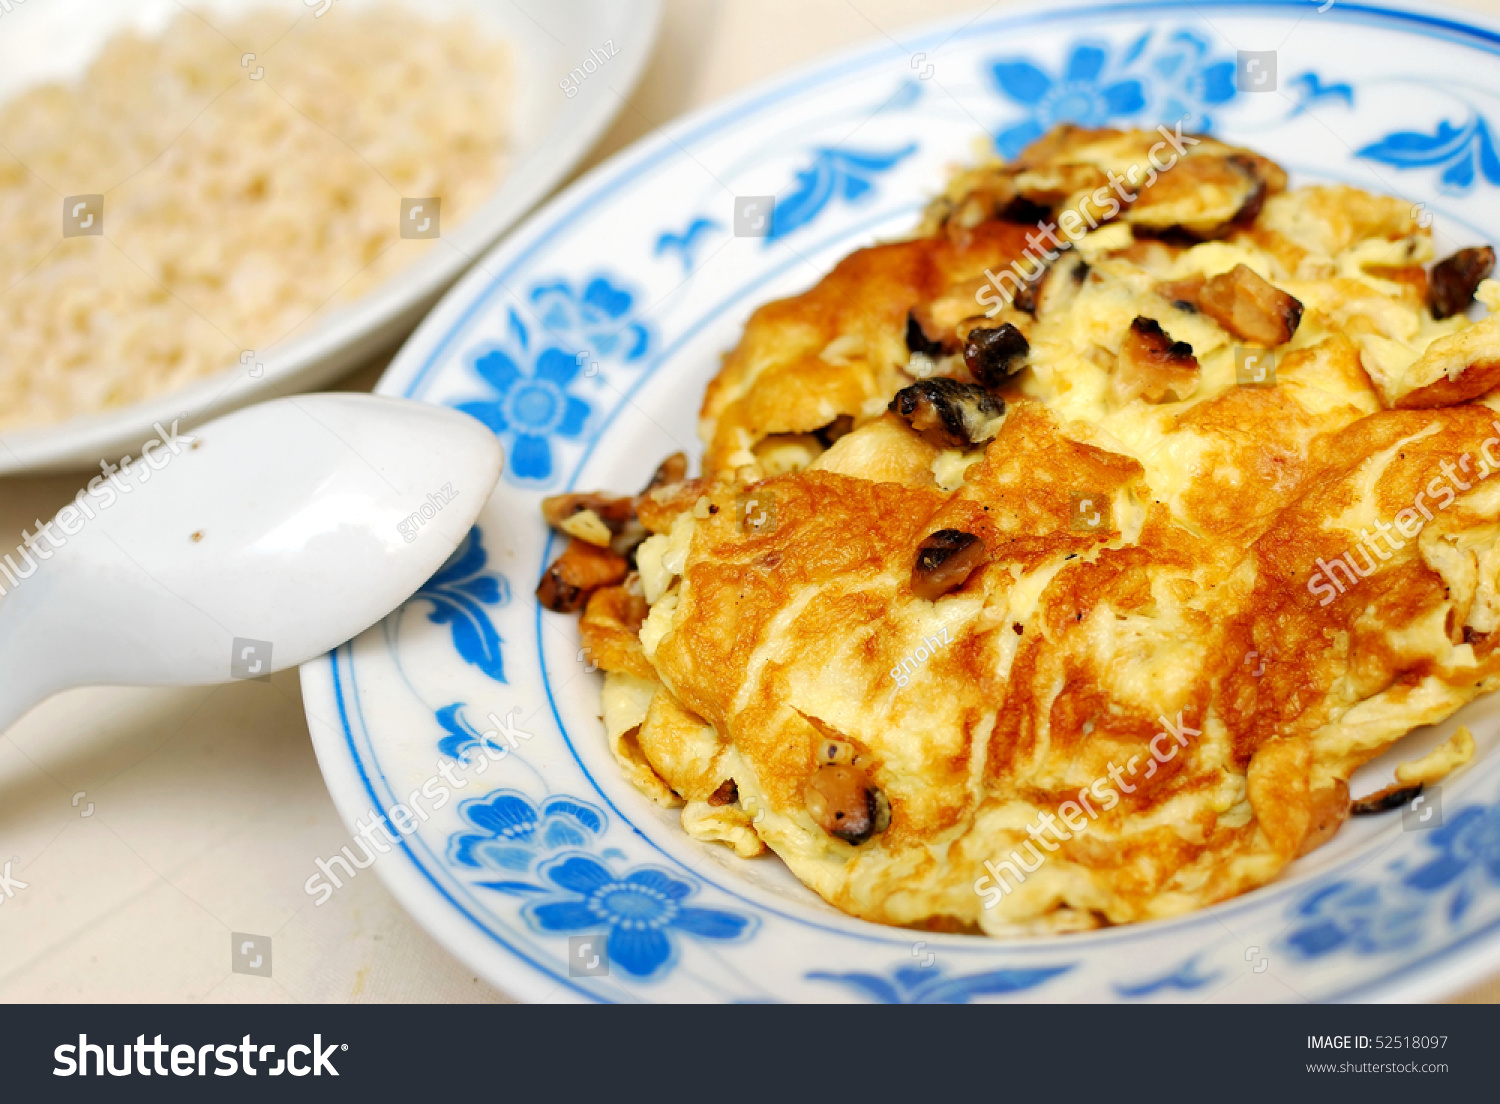 Fried Or Scrambled Egg Cooked Chinese Style With Healthy Brown How To Cook  Brown Rice With Diet To Lose Weight